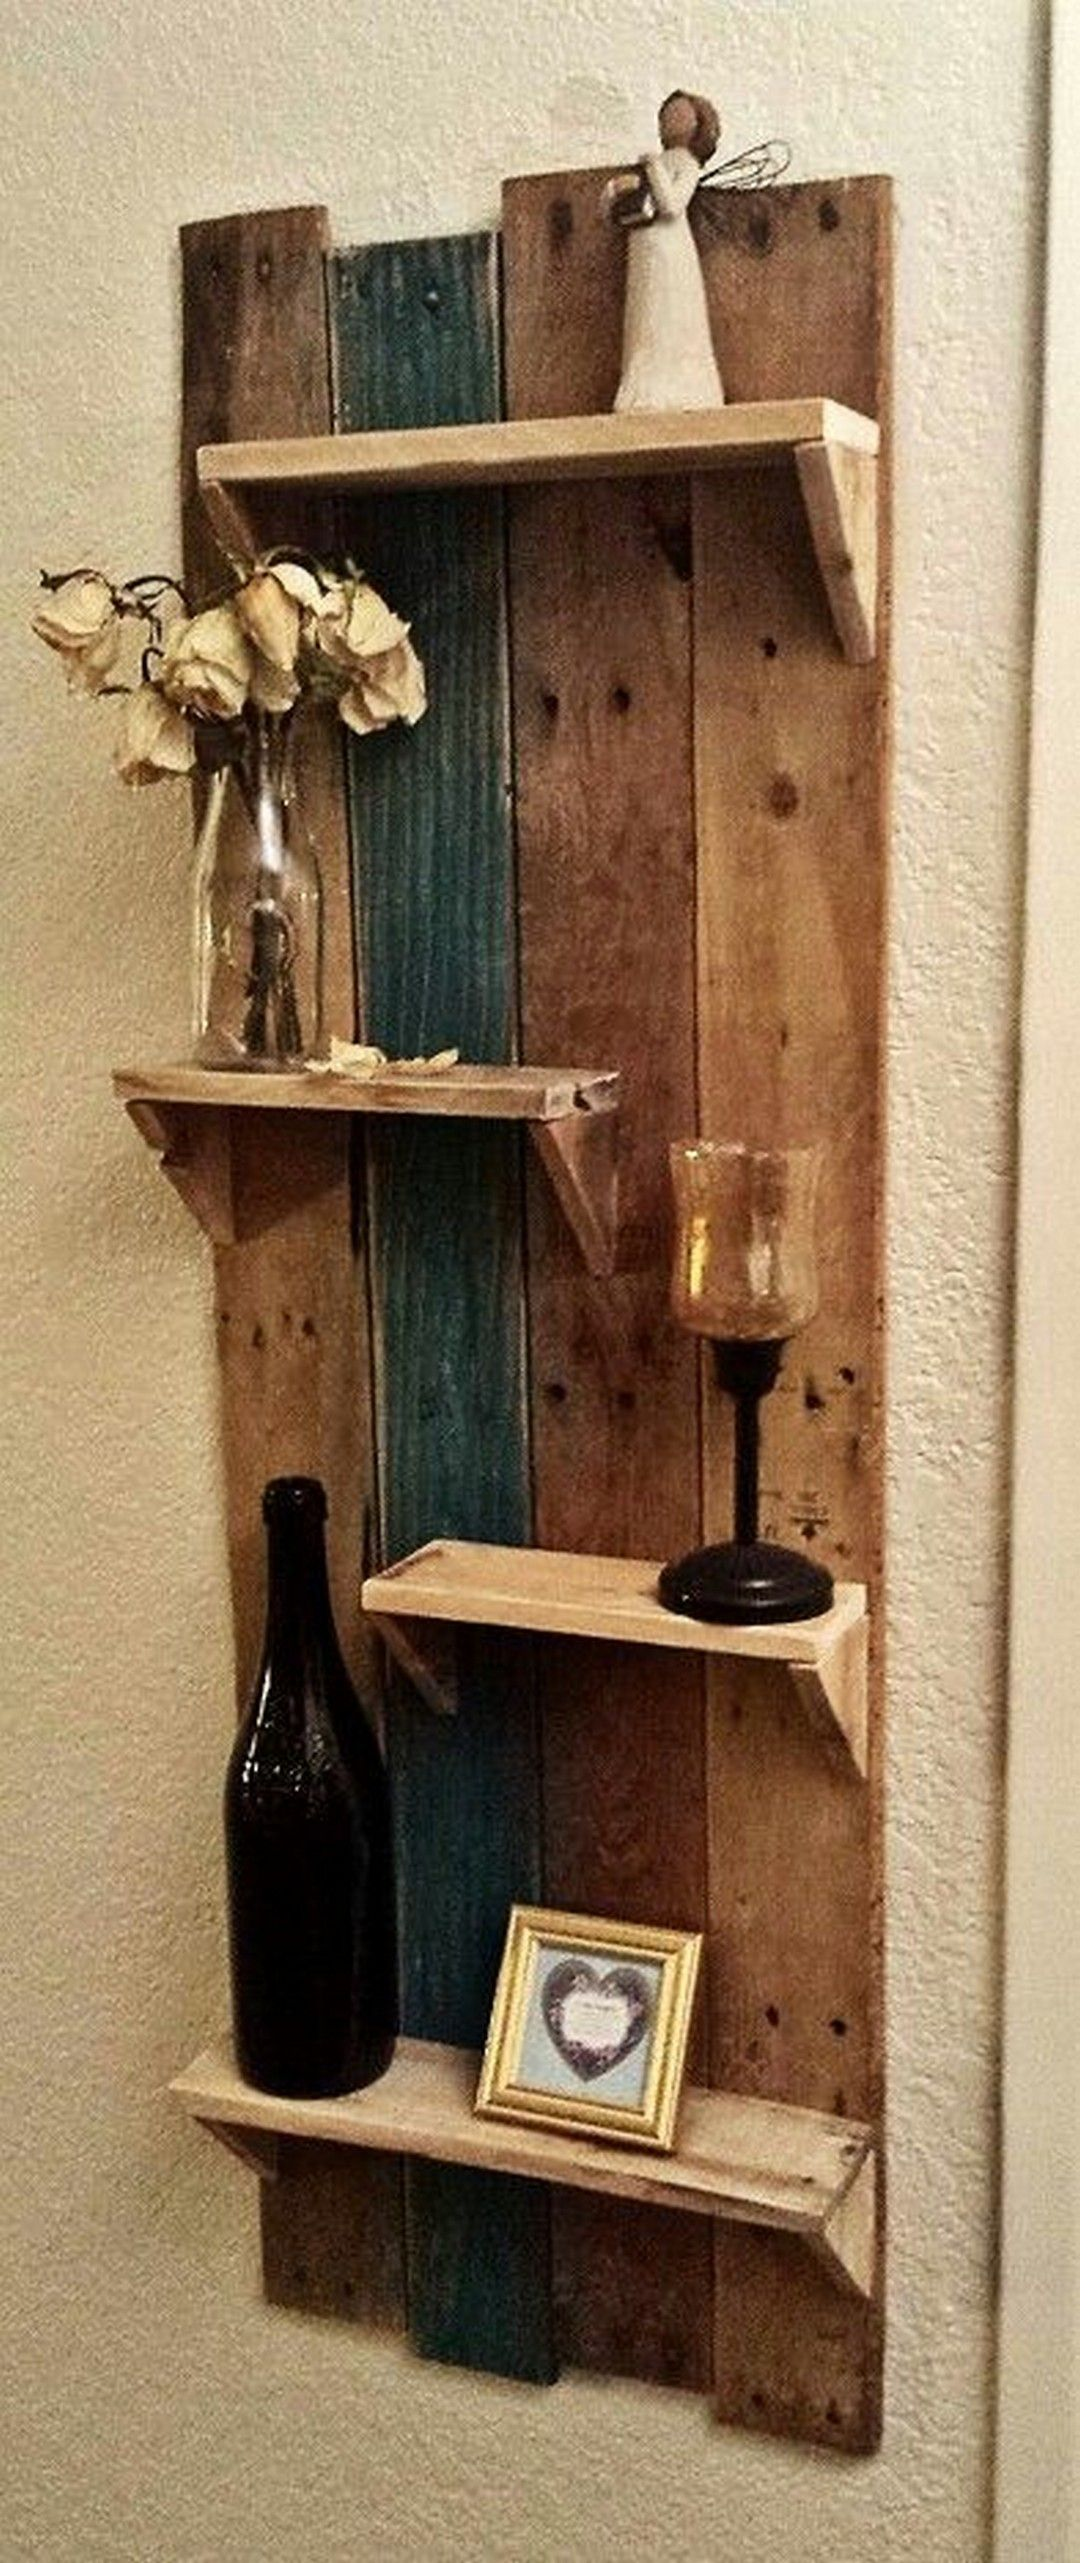 Superb Wood Pallet Decorating For Your Small Room Abchomedecor Pallet Wood Shelves Wooden Pallet Shelves Diy Pallet Projects